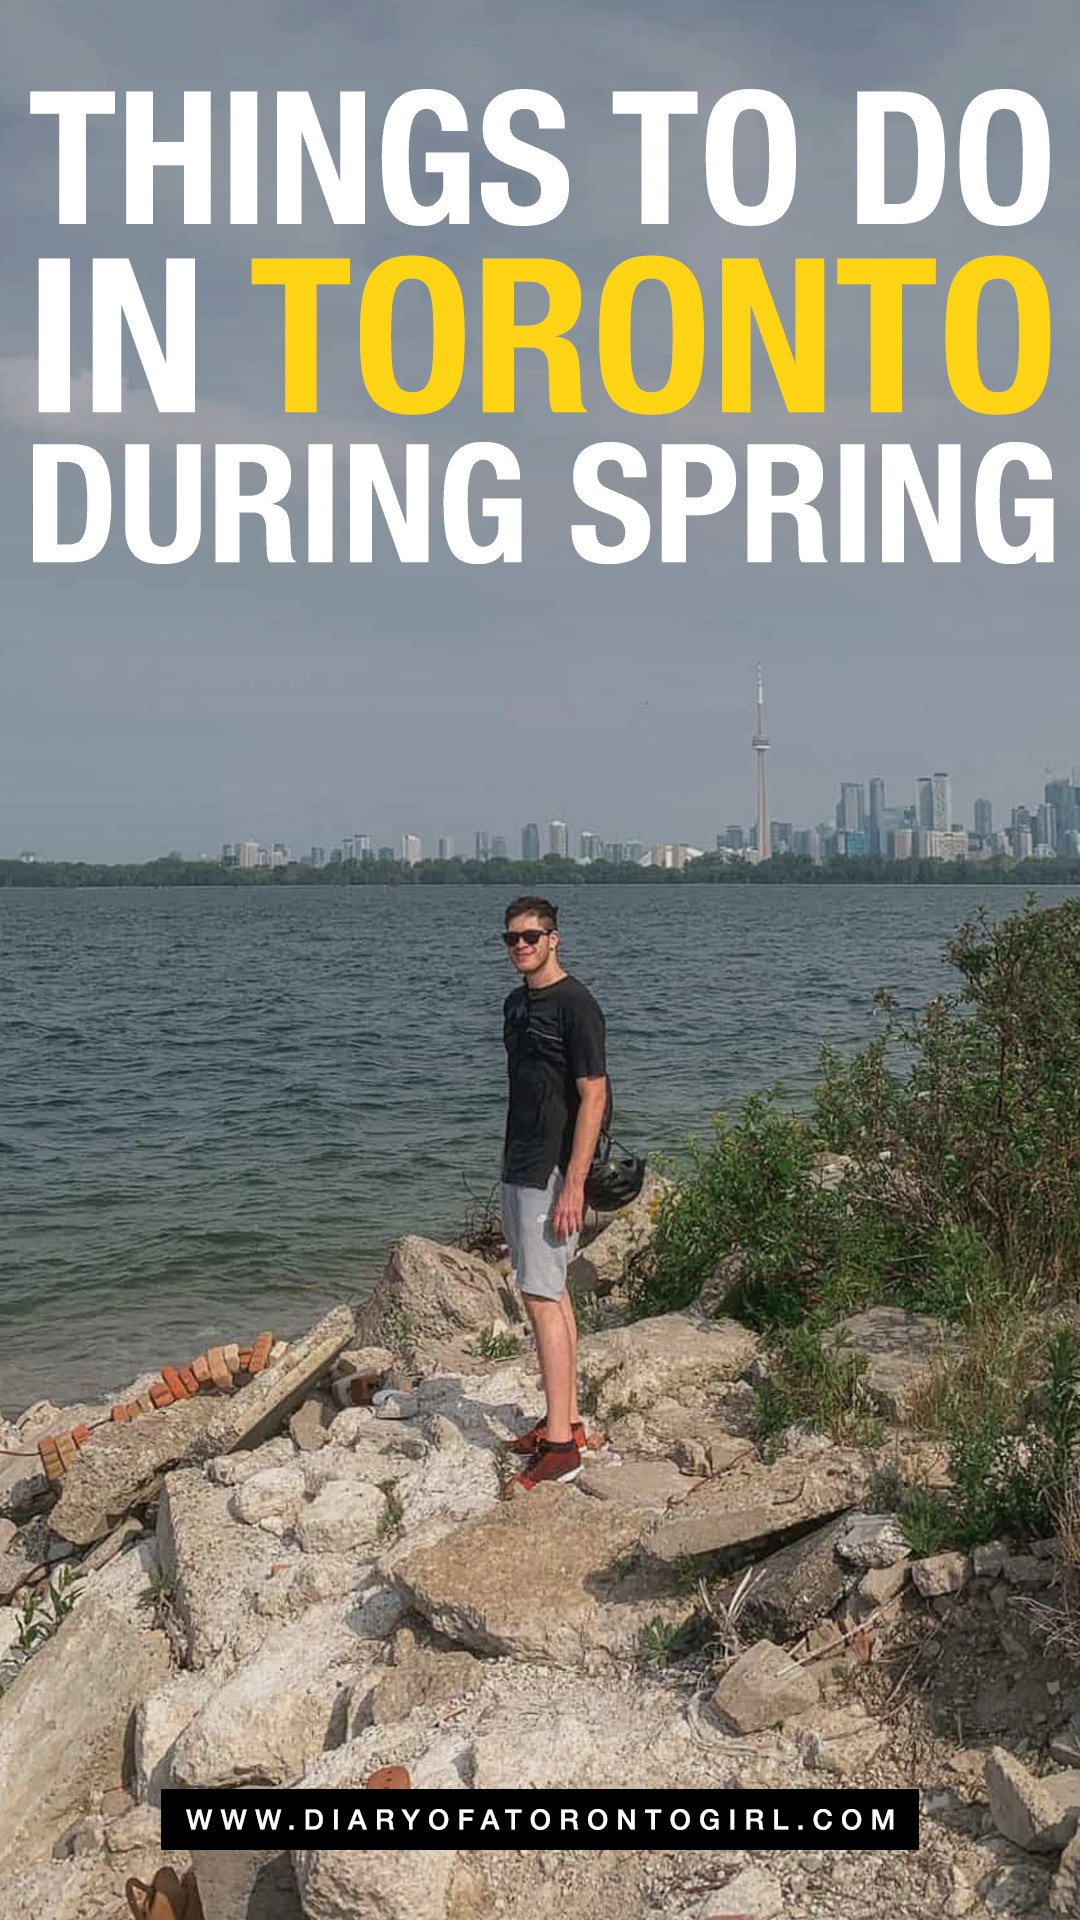 Fun and exciting things to do in Toronto this spring, whether you're looking to get outside and enjoy some sunshine or do some cool spring activities indoors instead!